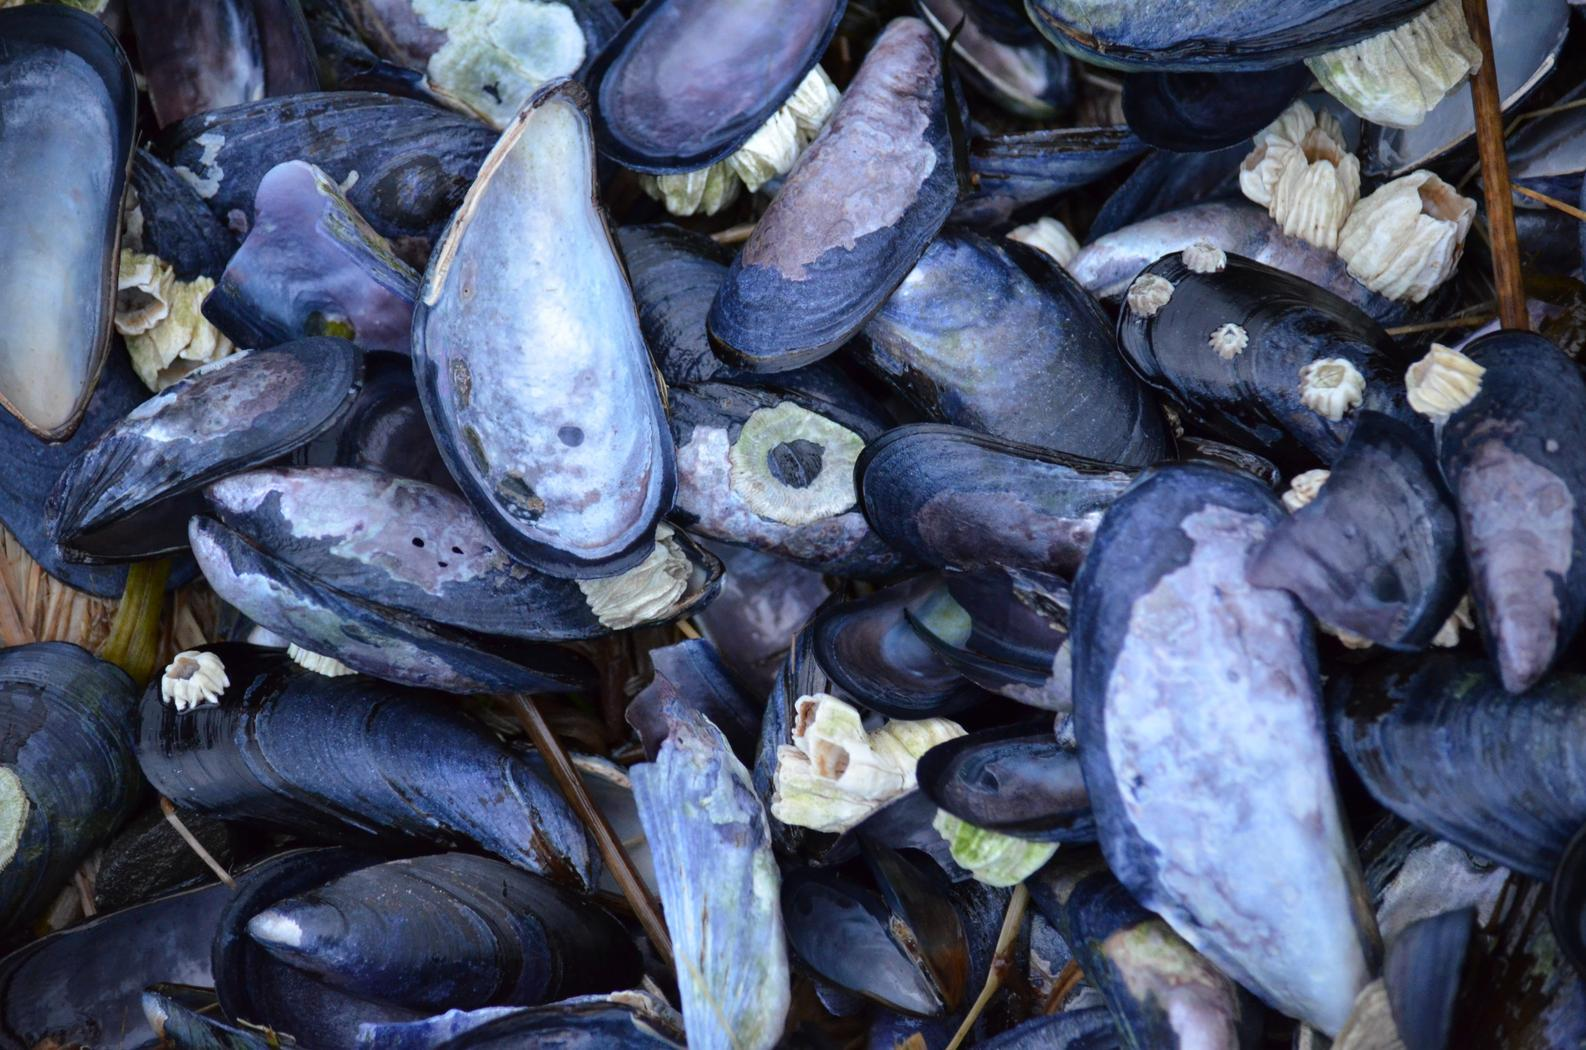 Blue mussels. (Credit Photo by Kathy Kartchner)